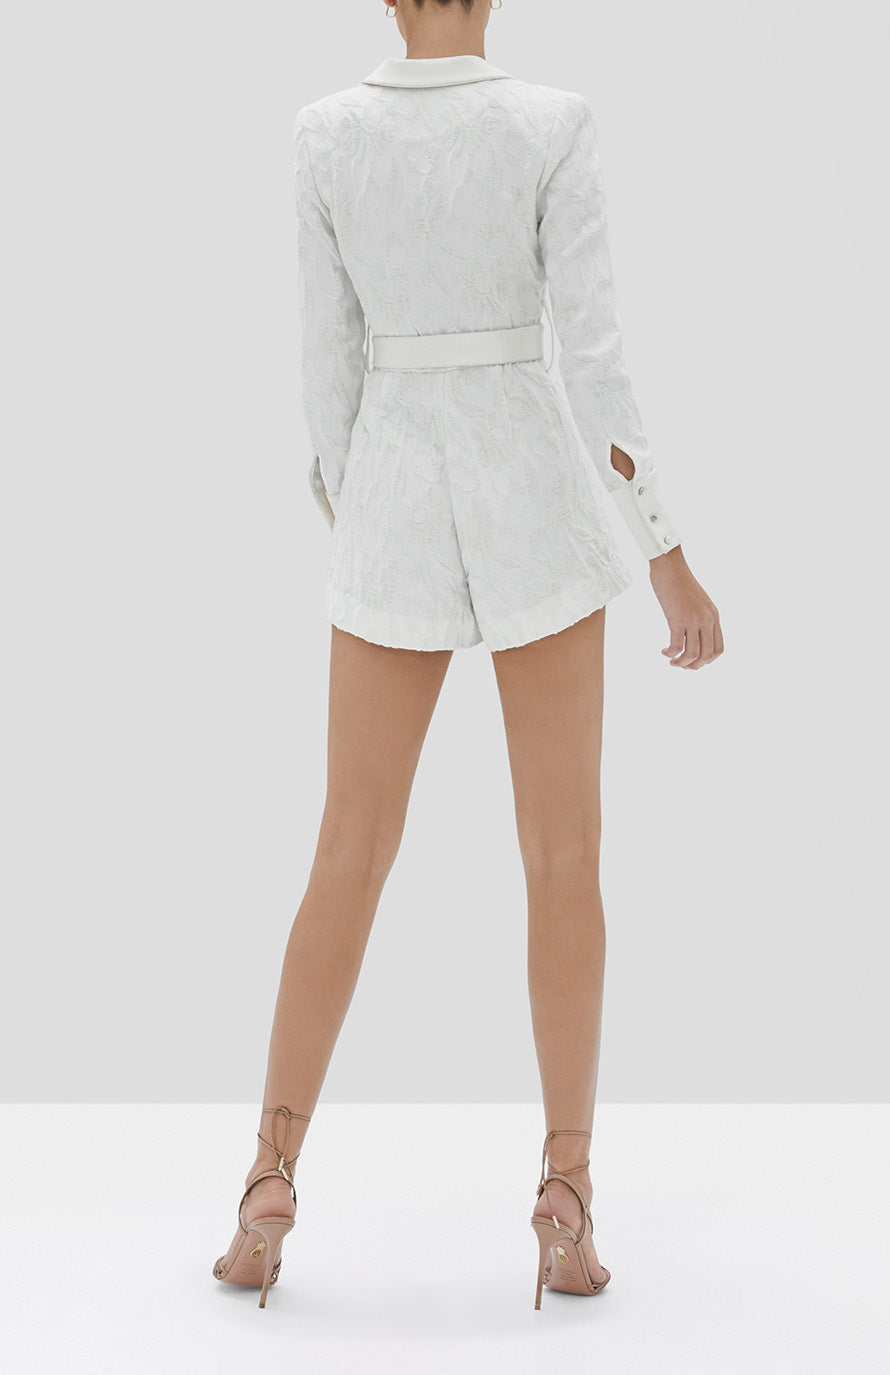 Alexis Ashling Romper in White Floral Jacquard from the Fall Winter 2019 Ready To Wear Collection - Rear View